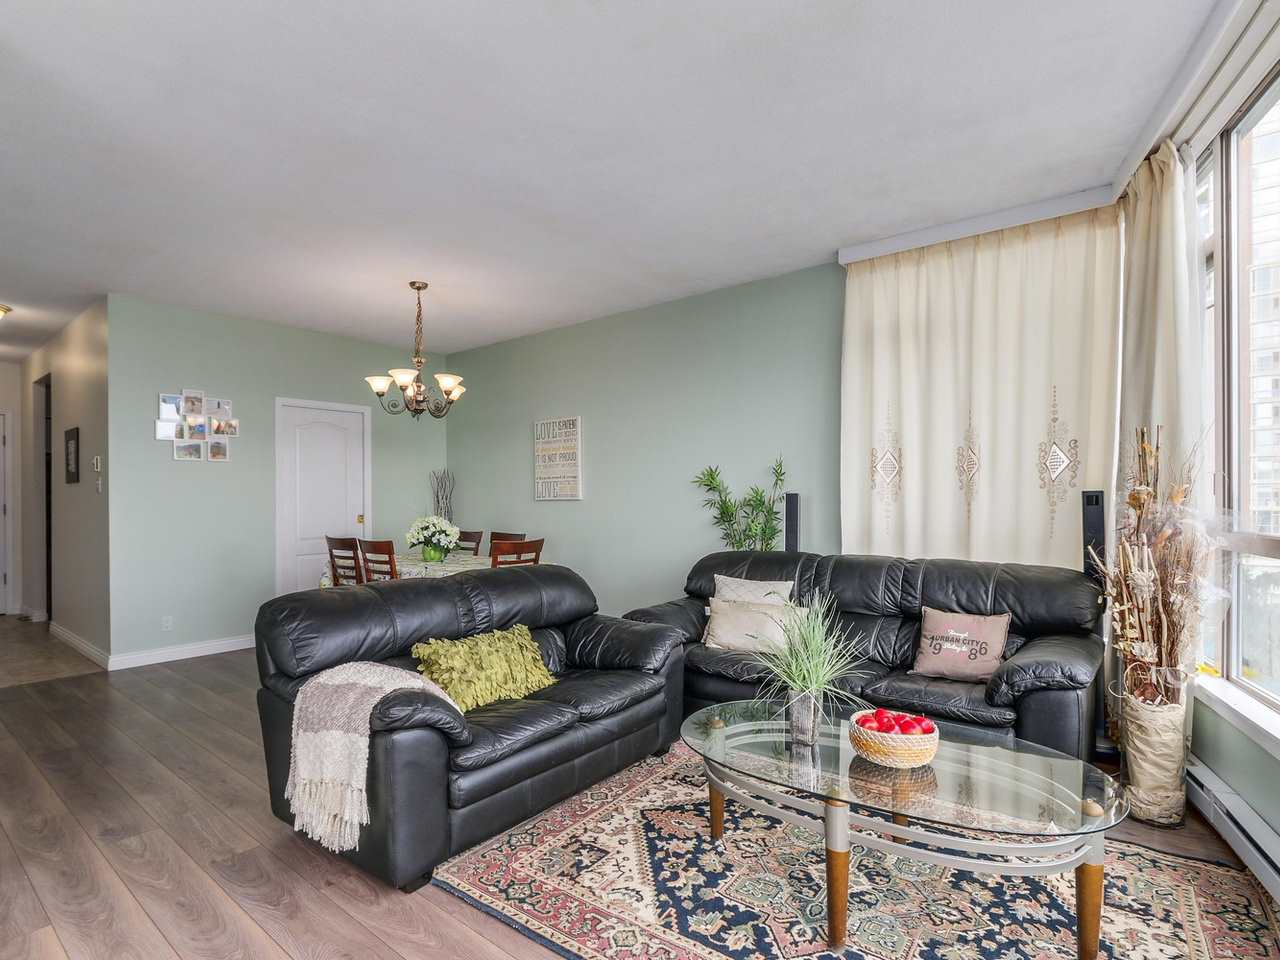 Photo 8: 1005 6888 STATION HILL Drive in Burnaby: South Slope Condo for sale (Burnaby South)  : MLS® # R2125491